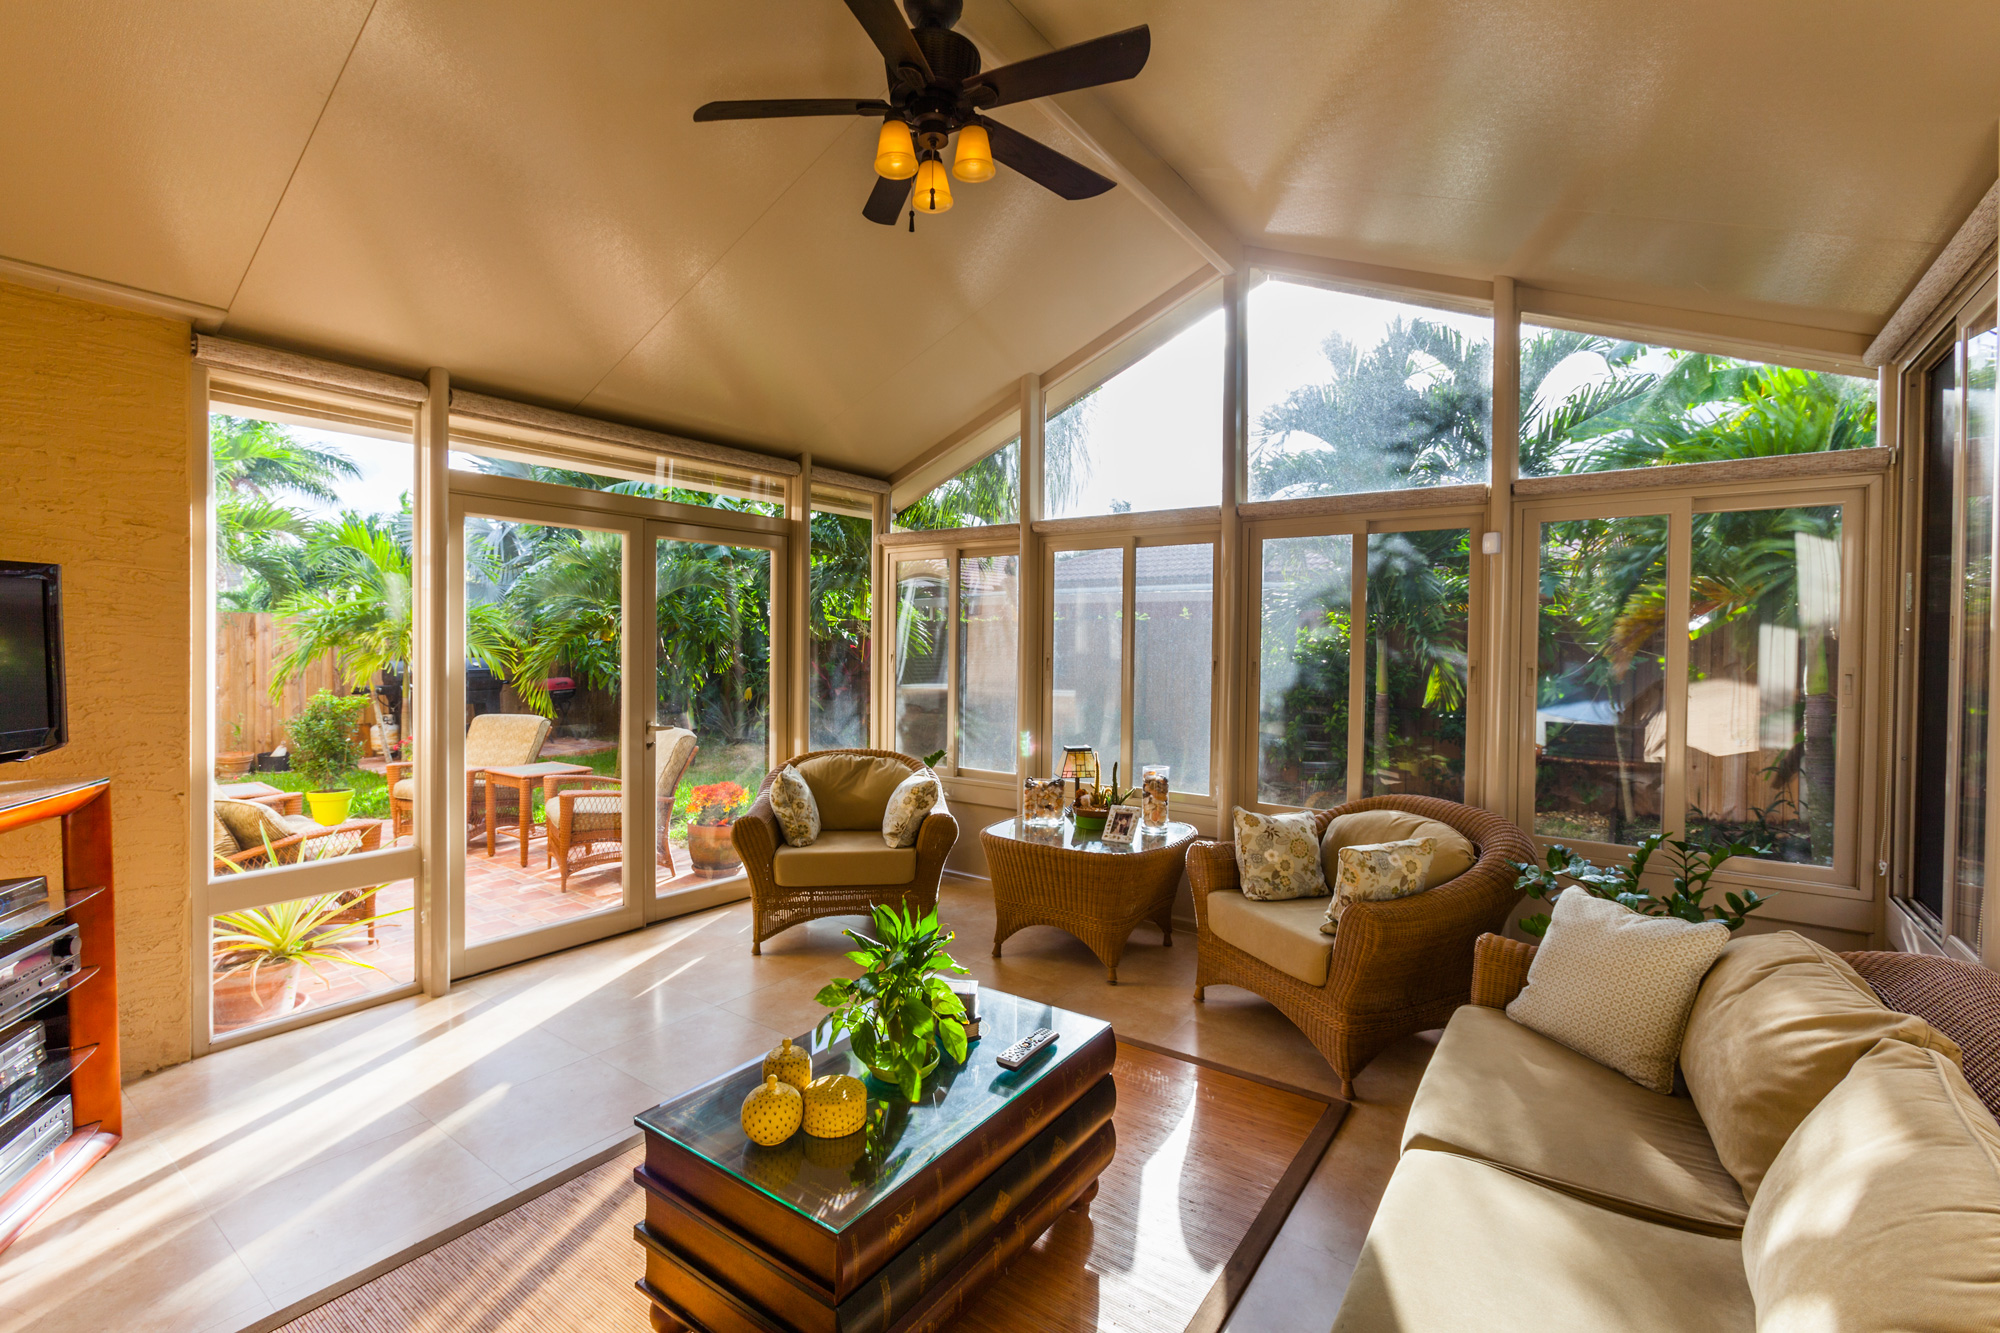 Your-Sunroom-Addition-is-the-most-light-filled-room-in-the-house-and-makes-a-beautiful-living-space.